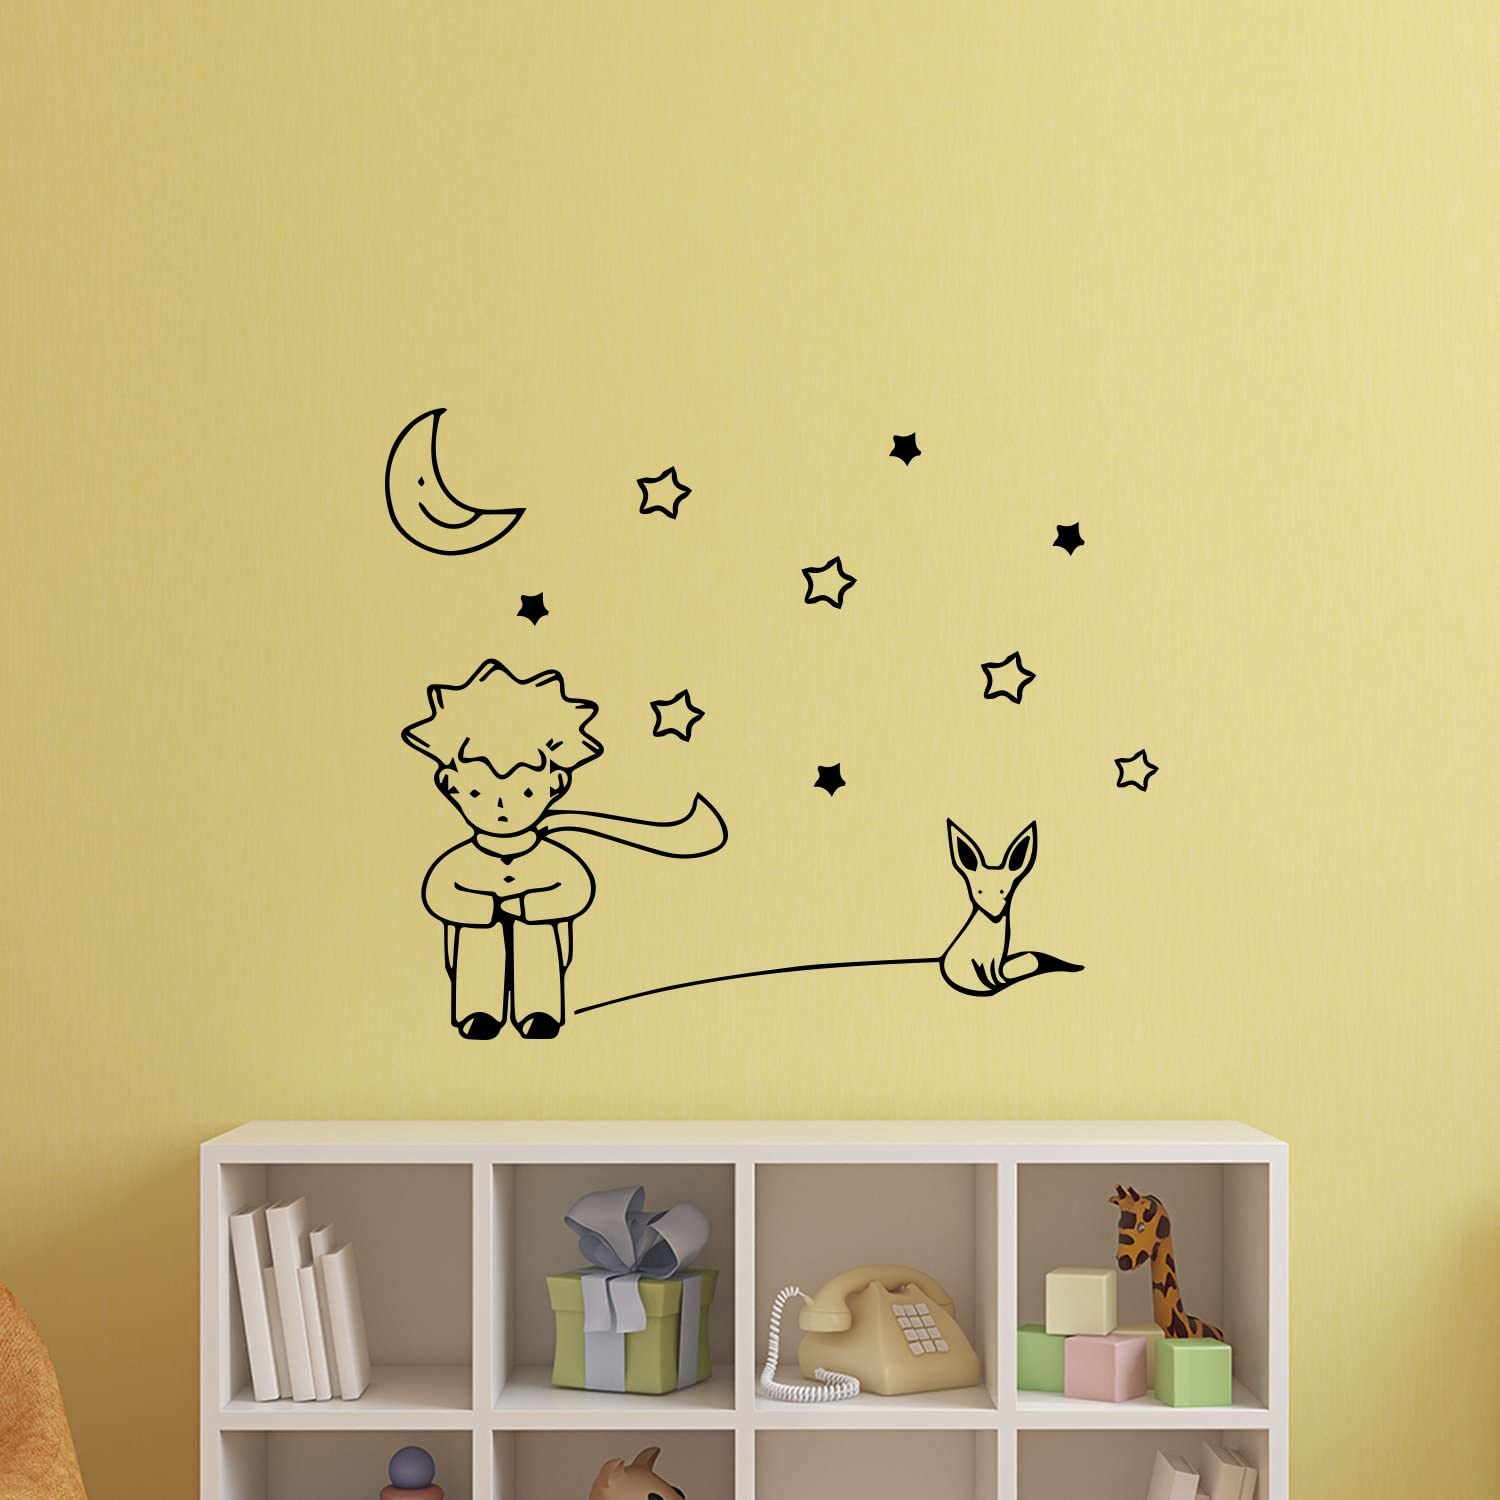 Trendy Our Little Prince Removable Art Vinyl Mural Home Room Decor Wall Stickers